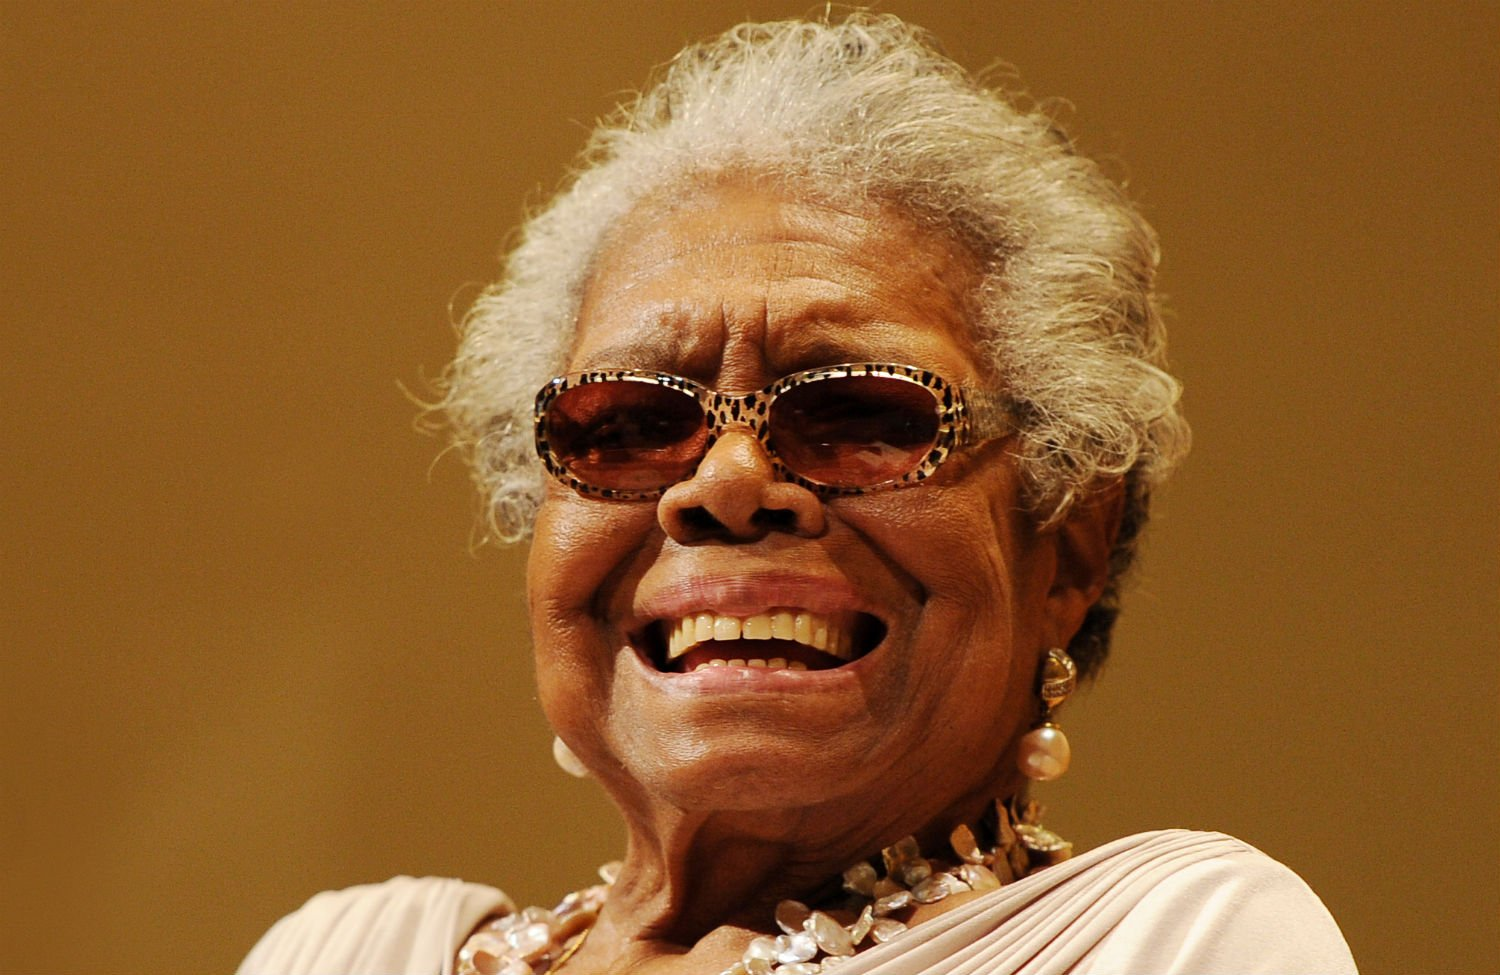 """maya augelou Distinctly referred to as """"a redwood tree, with deep roots in american culture,"""" dr maya angelou (april 4, 1928-may 28, 2014) led a prolific life as a singer, dancer, activist, poet and writer, she inspired generations with lyrical modern african-american thought that pushed boundaries."""